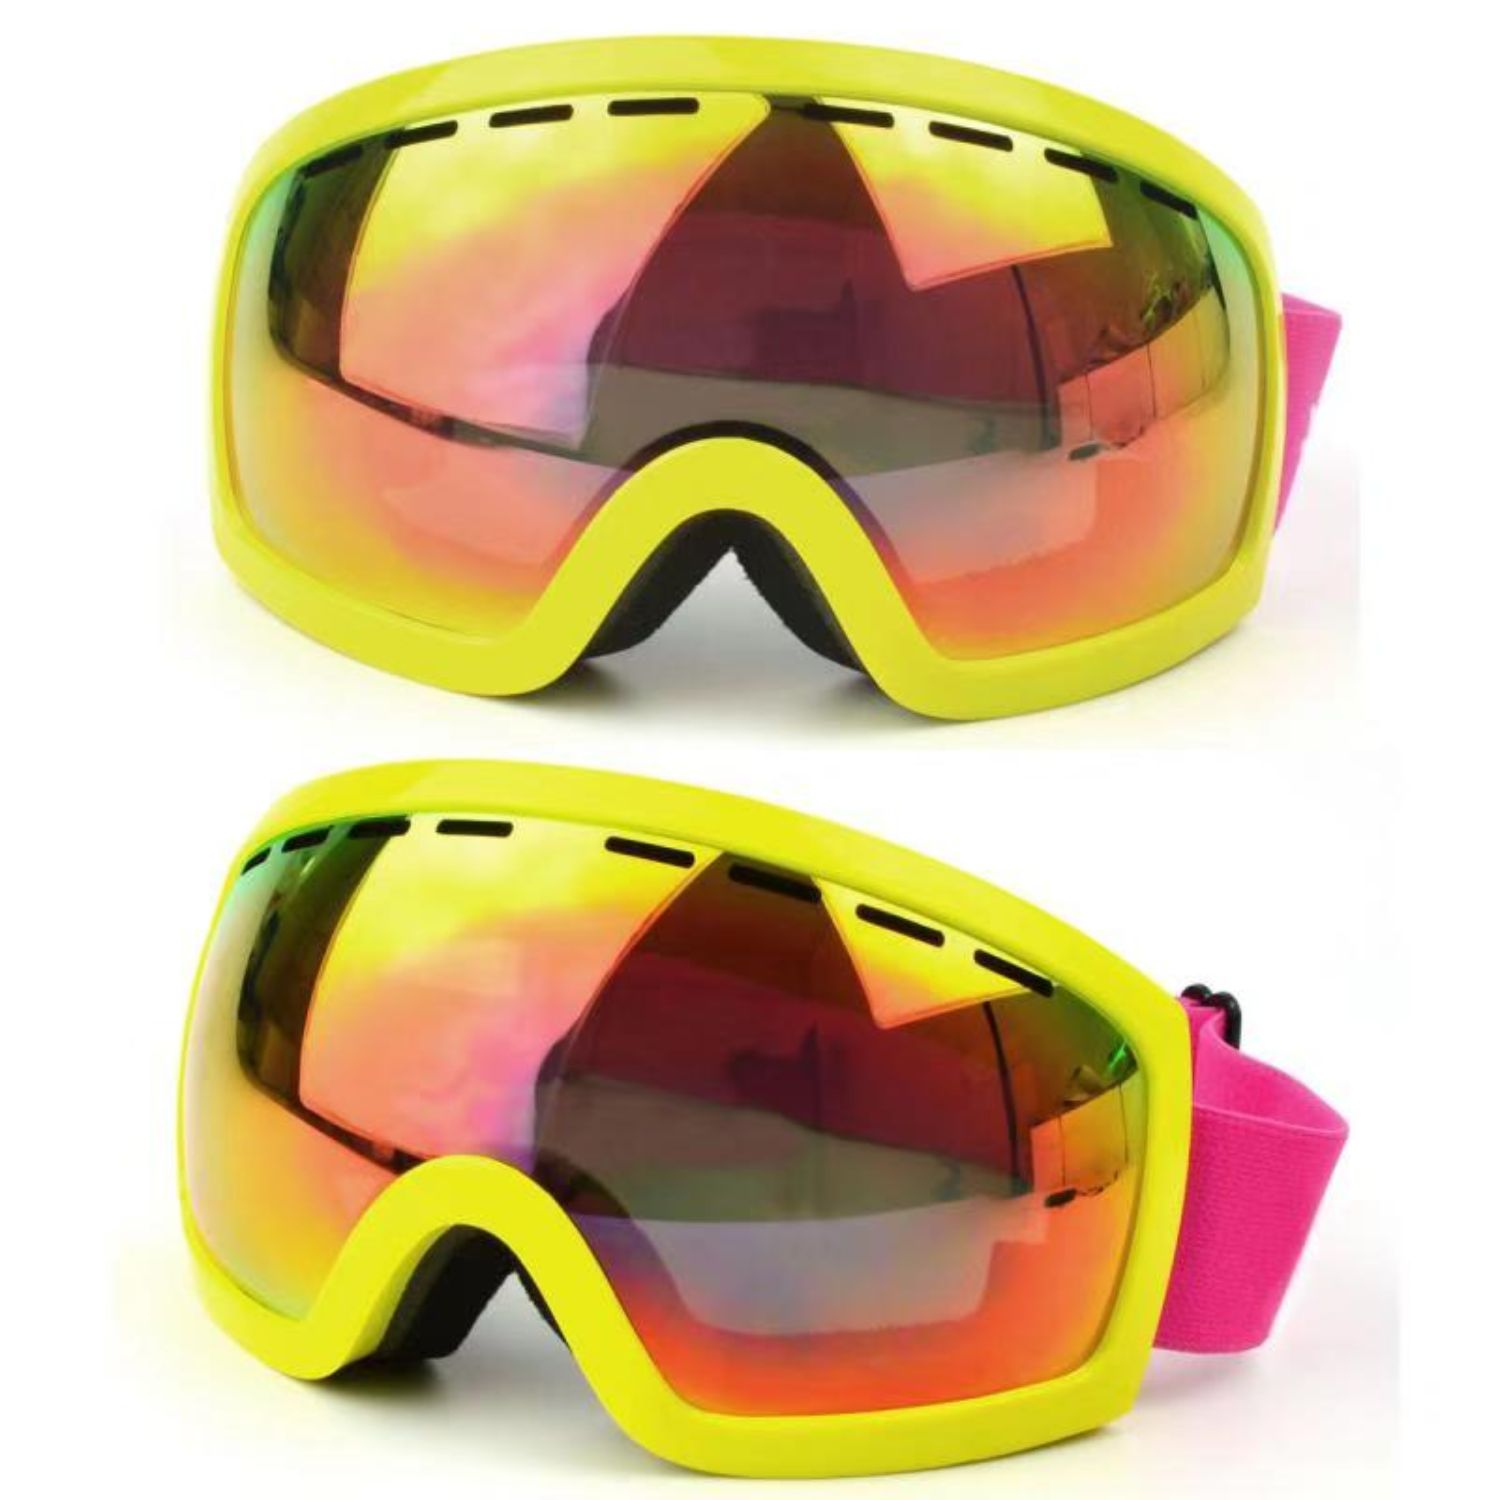 SG04 - Ski Snowboard Outdoor UV Protection Goggles for Men and Women